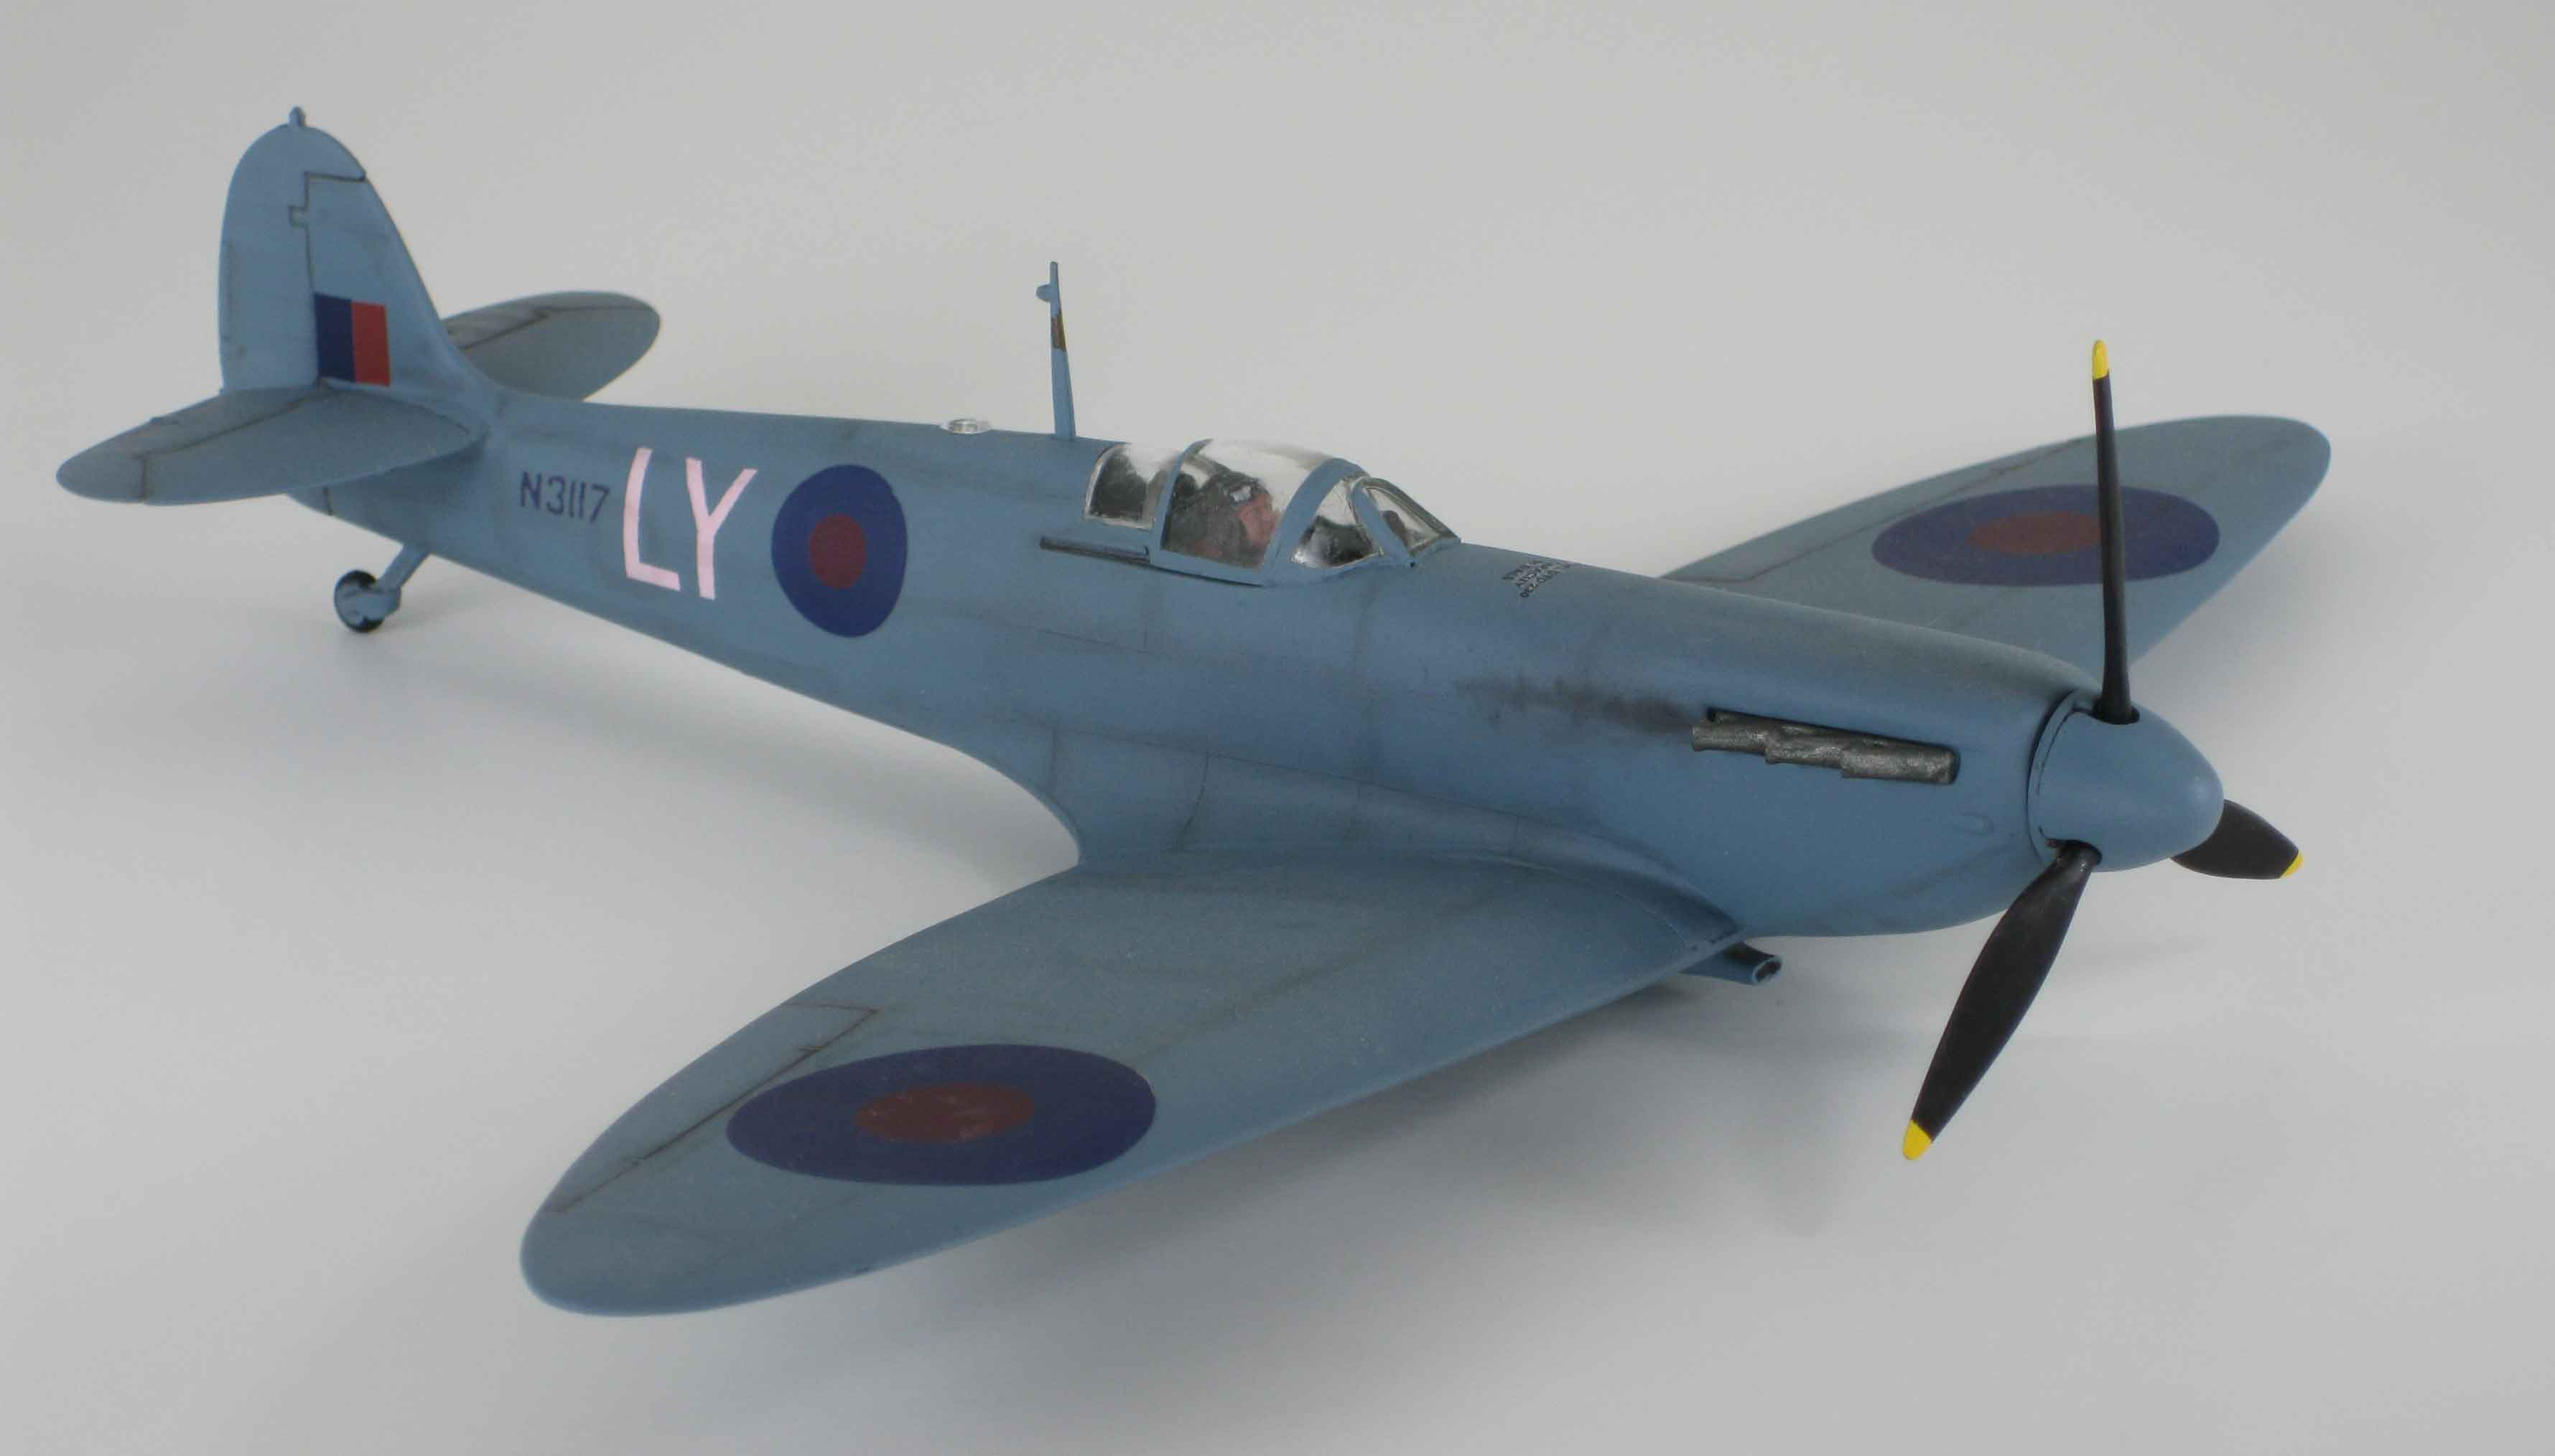 1/48 spitfire airbrushed PRU blue - high altitude photoreconaissance unit aircraft